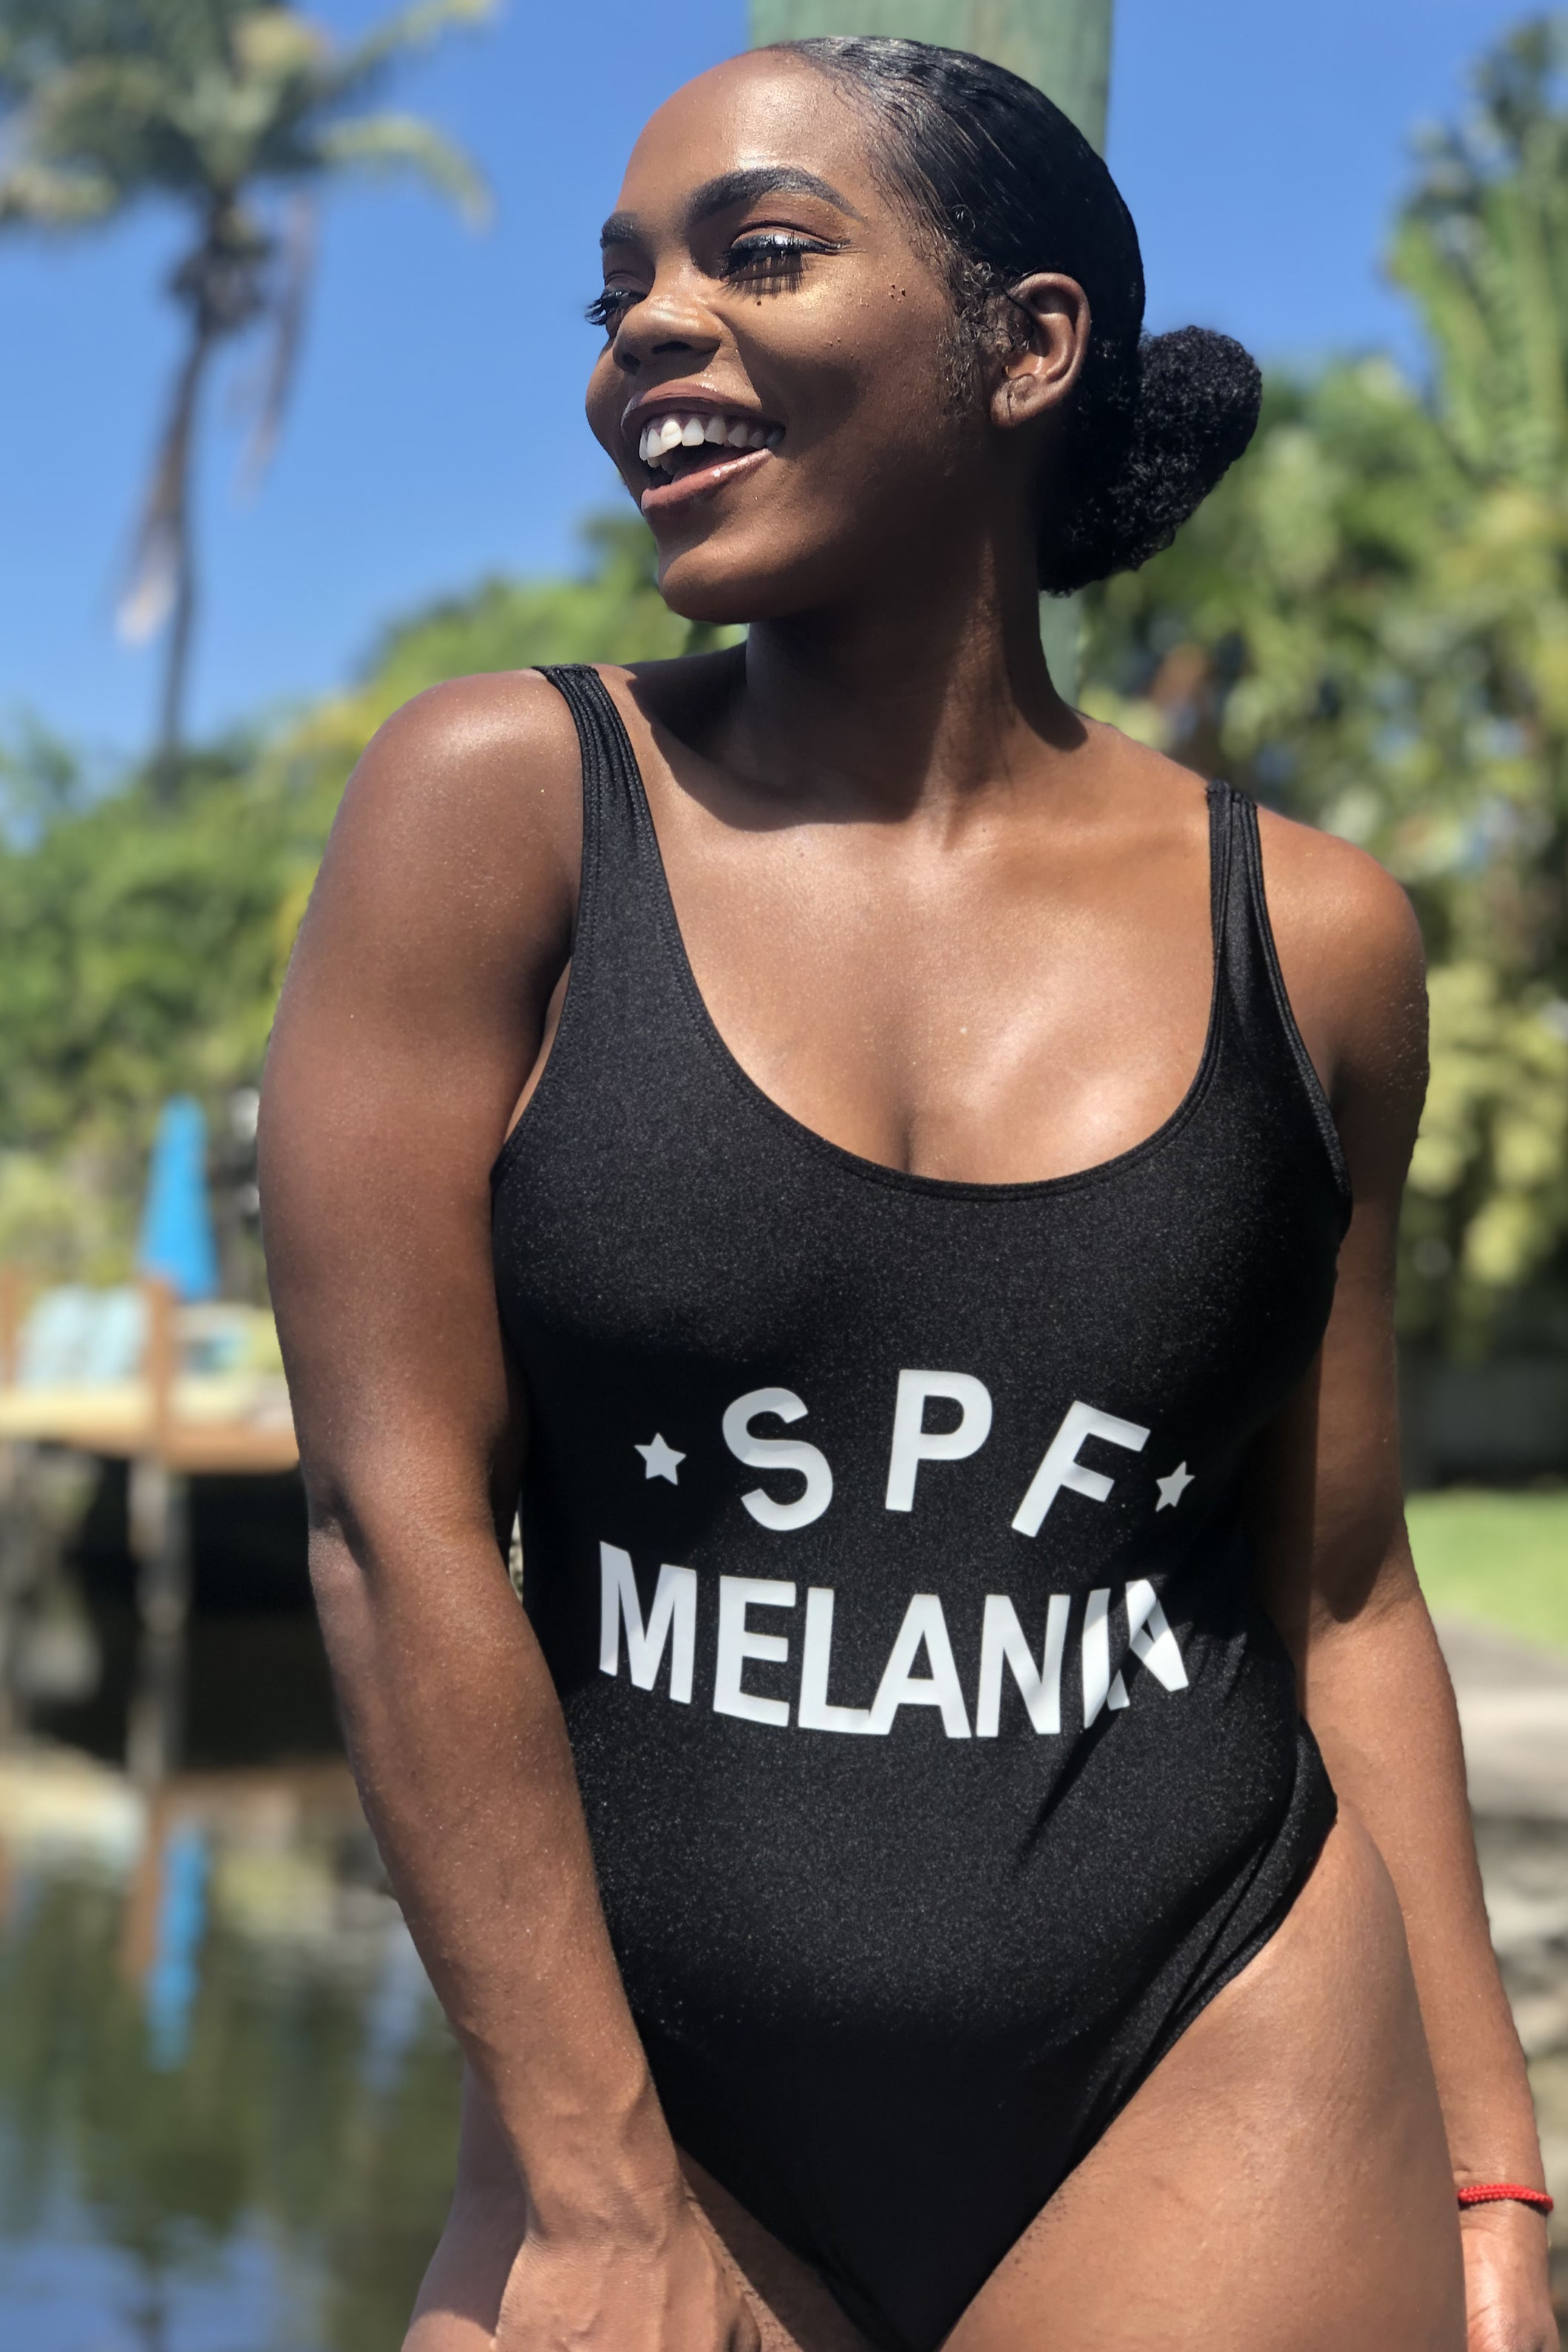 SPF Melanin One-Piece Bathing Suit (Bodysuit)